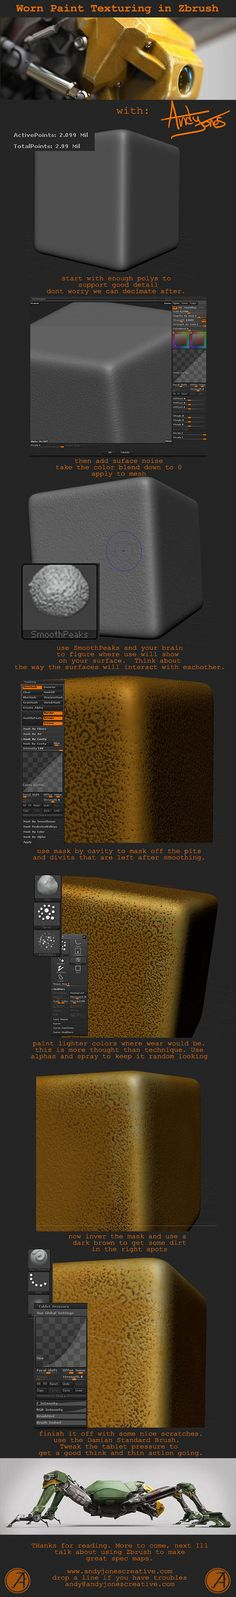 Ground Drone - Worn Paint Texturing tutorial in ZBrush